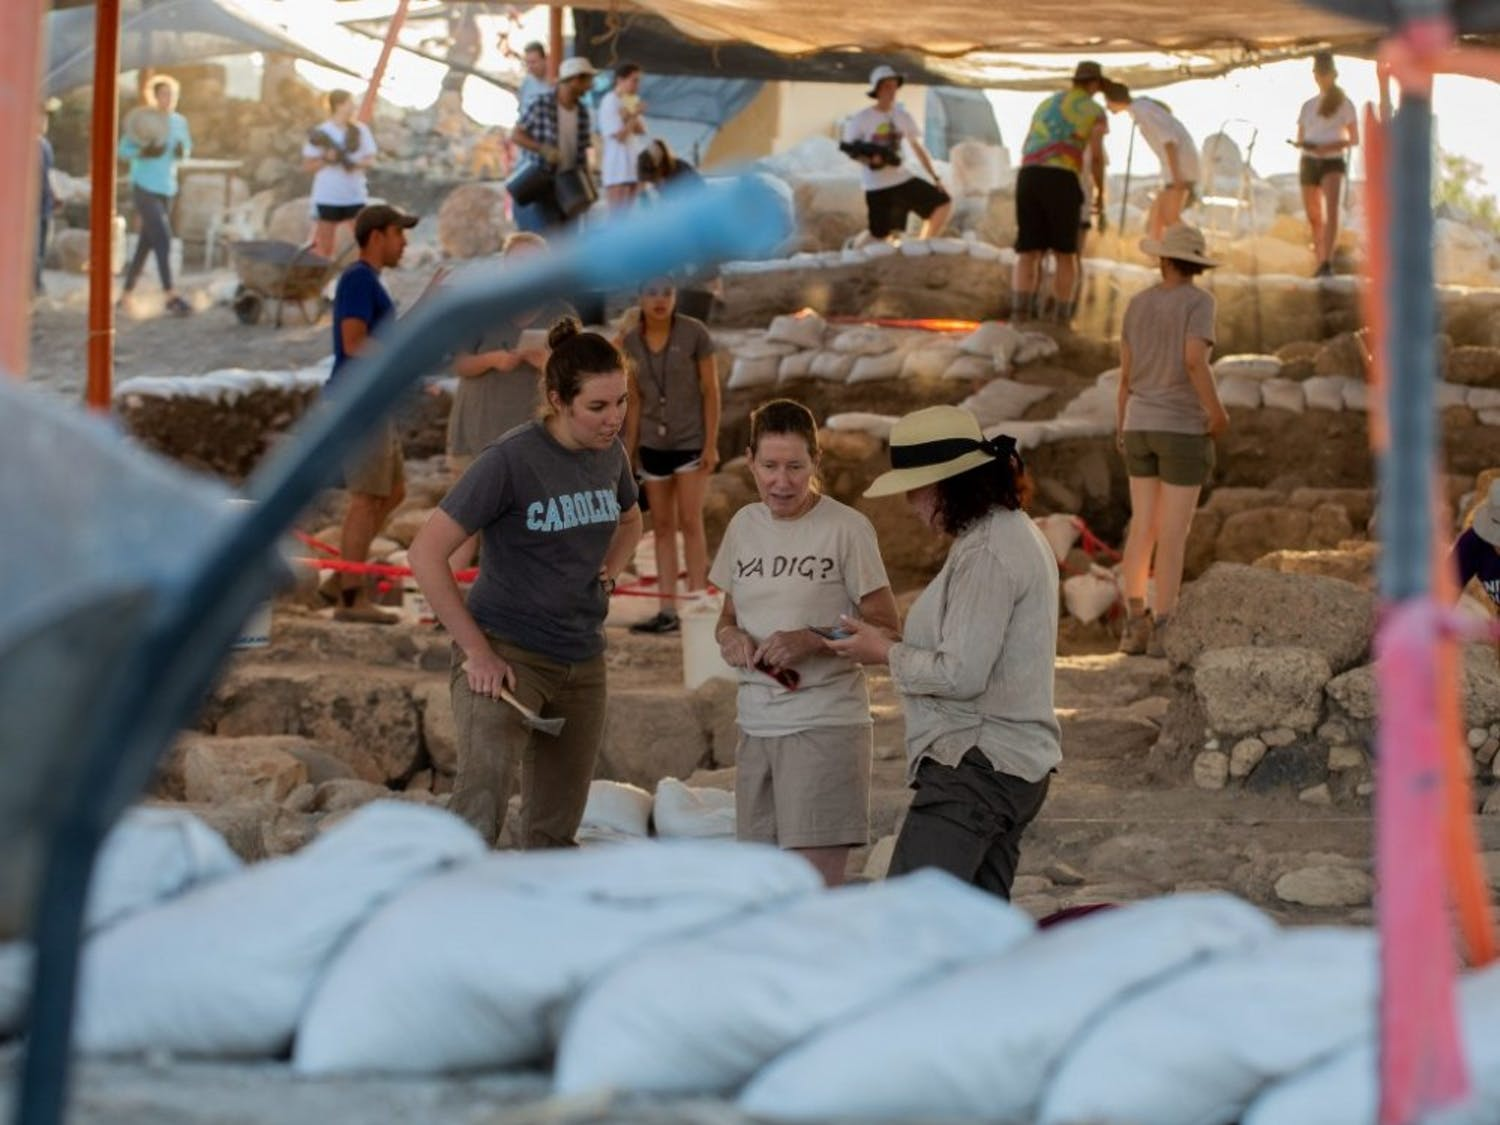 (From left to right) Jocelyn Burney, Magness and Shua Kisilevitz discuss strategy at the excavation site in Huqoq, Israel. (Photo by Will Melfi)